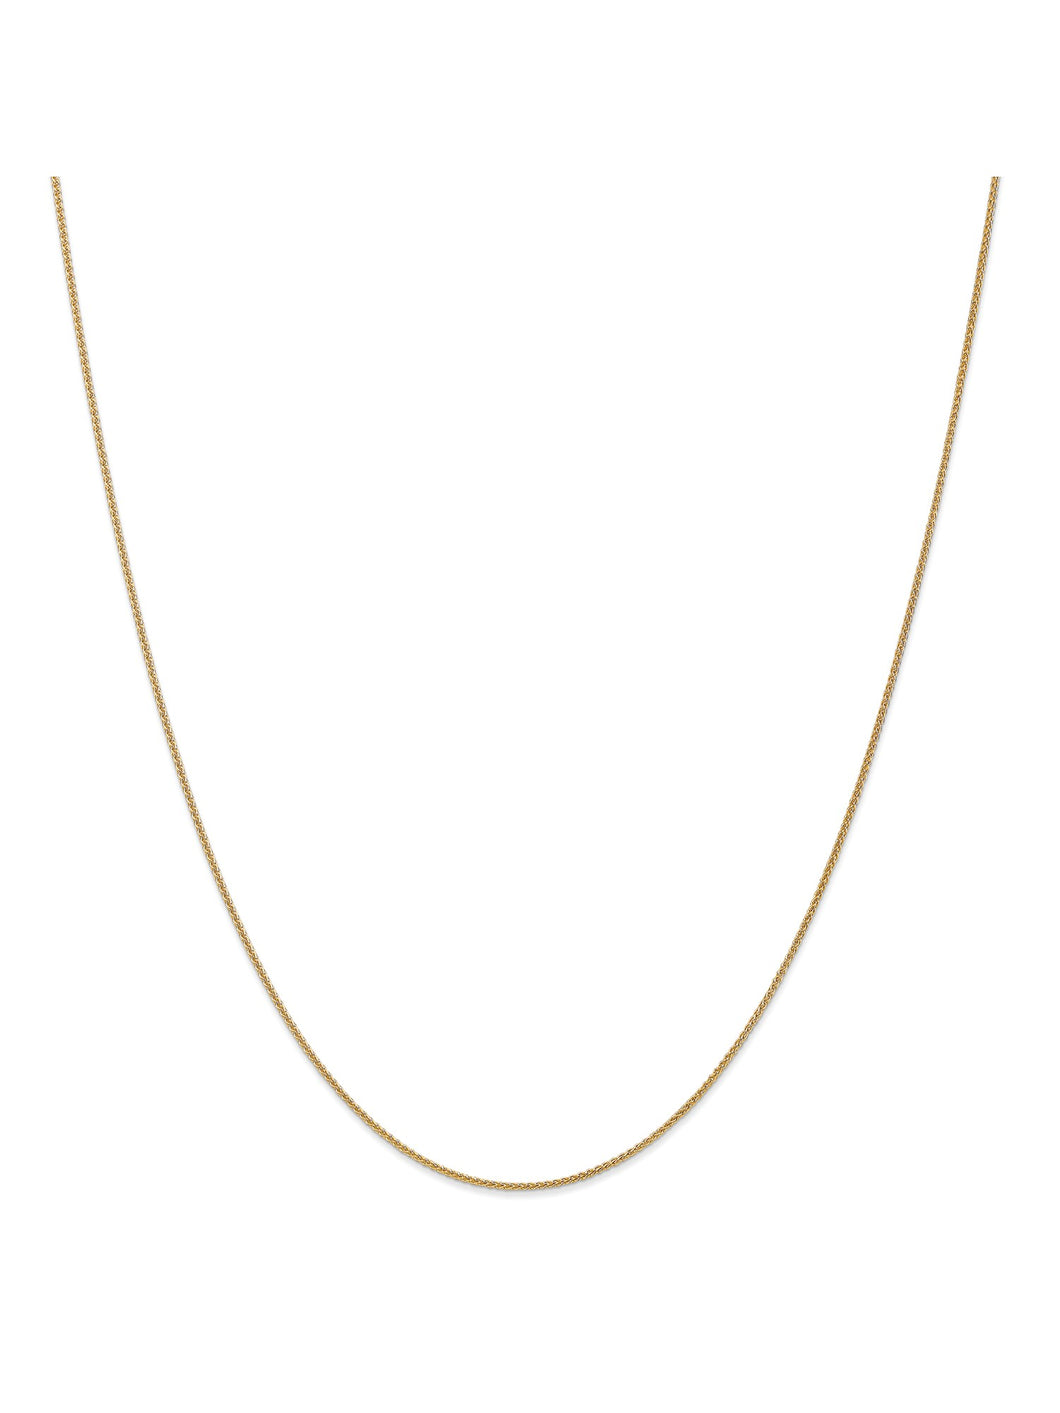 14k Yellow Gold 1.1 Wheat Chain Necklace